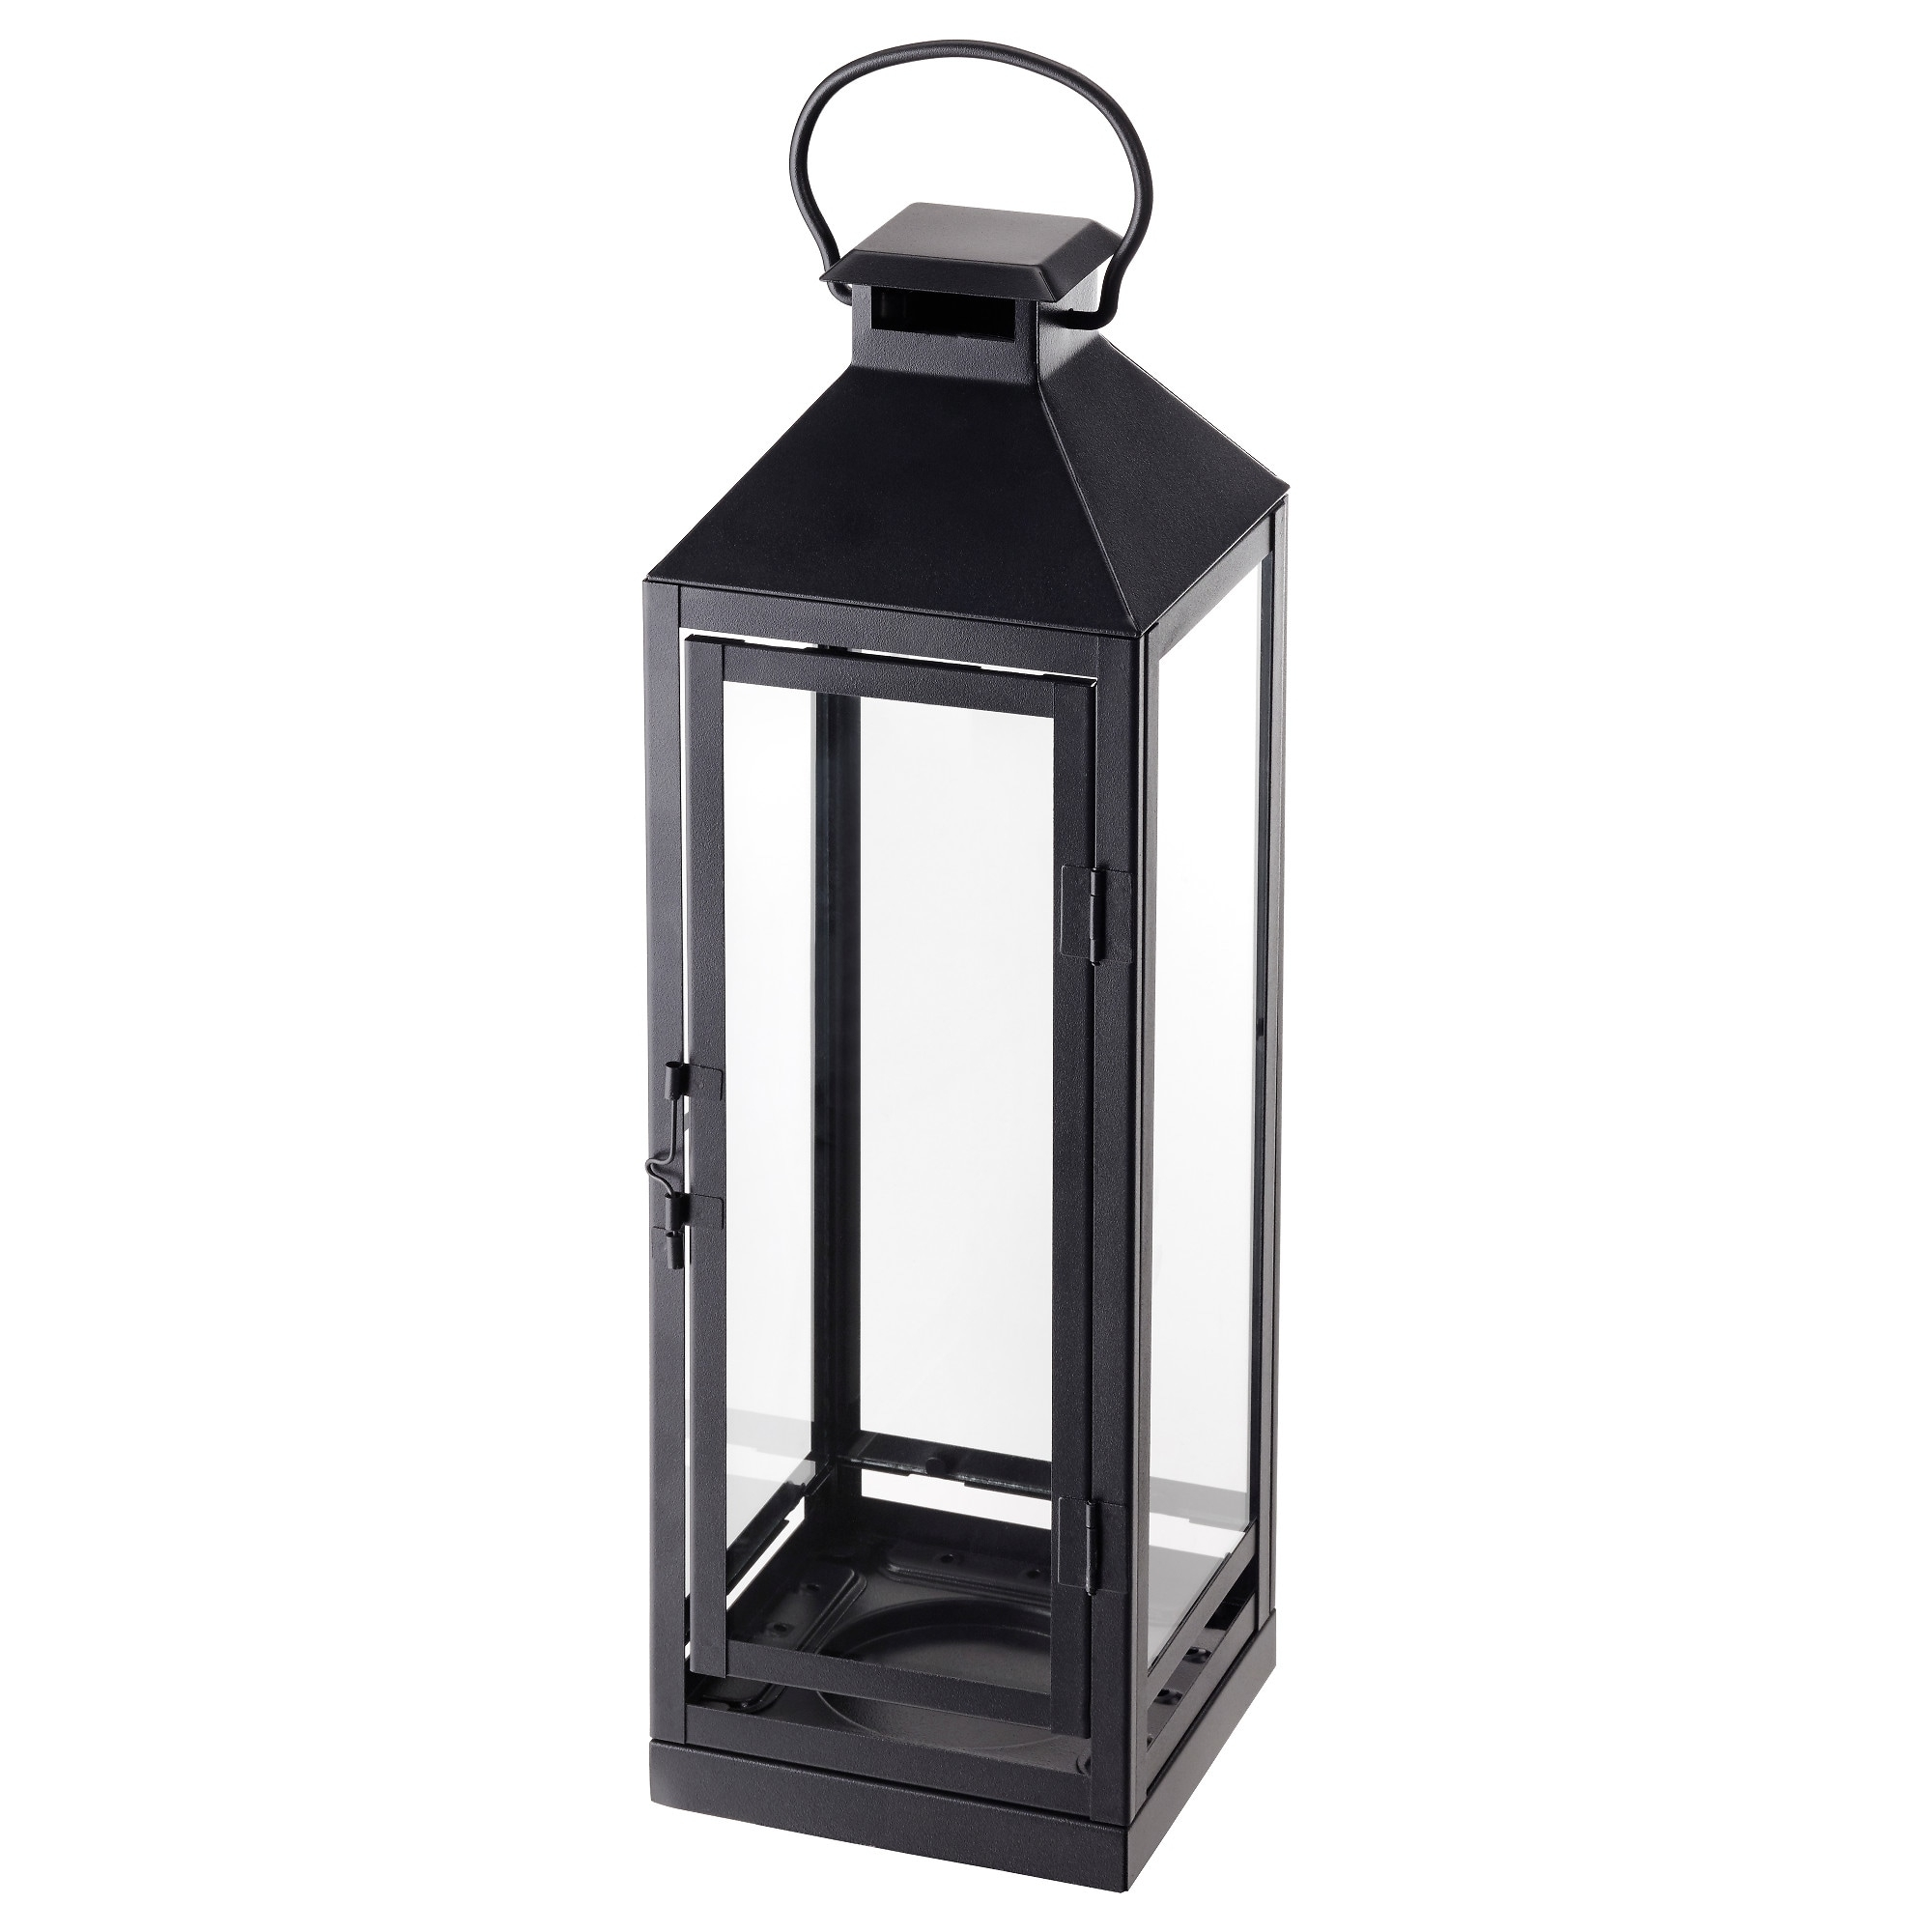 Lanterns & Candle Lanterns - Ikea throughout Outdoor Plastic Lanterns (Image 10 of 20)